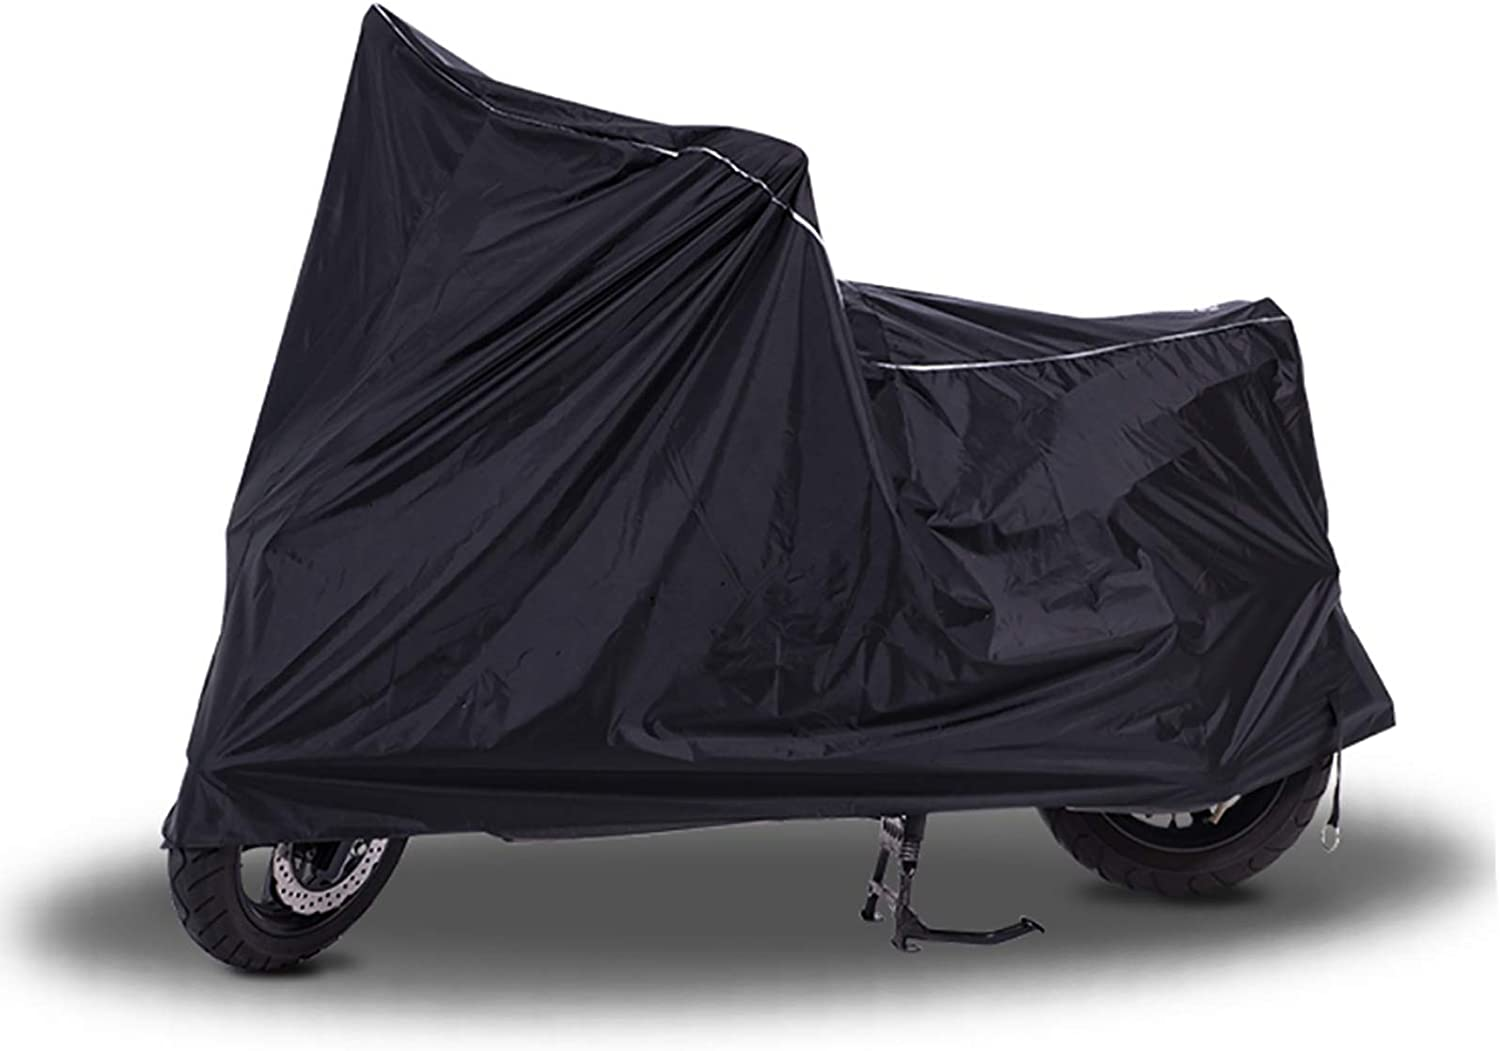 HWHCZ Latest item Motorcycle Covers Compatible with Motorbike Gilera Cover W mart